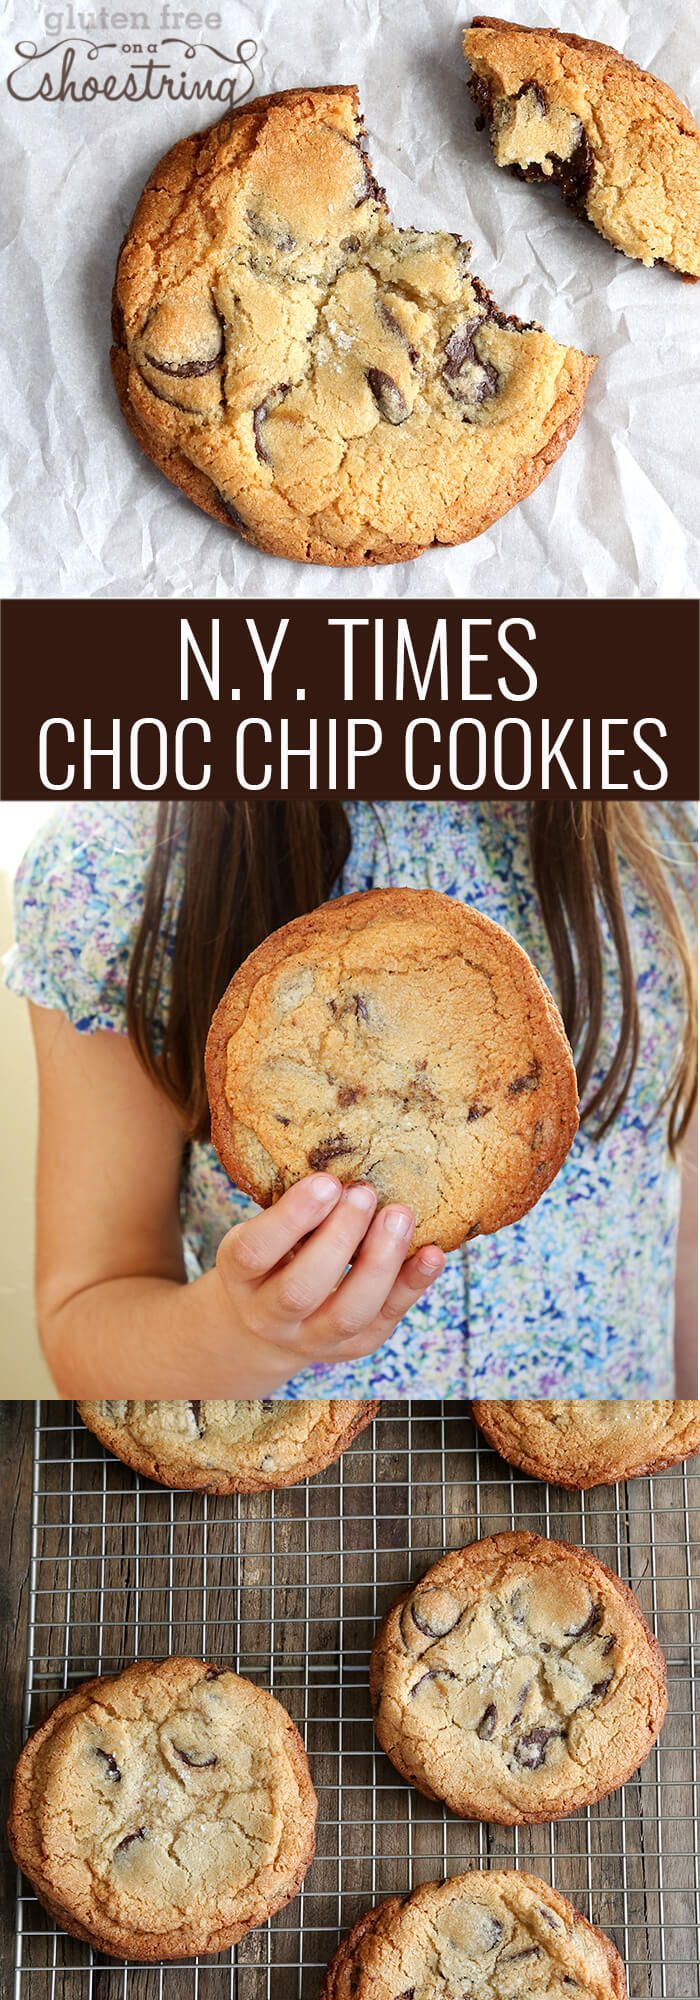 Gluten Free New York Times Chocolate Chip Cookies | Chocolate ...